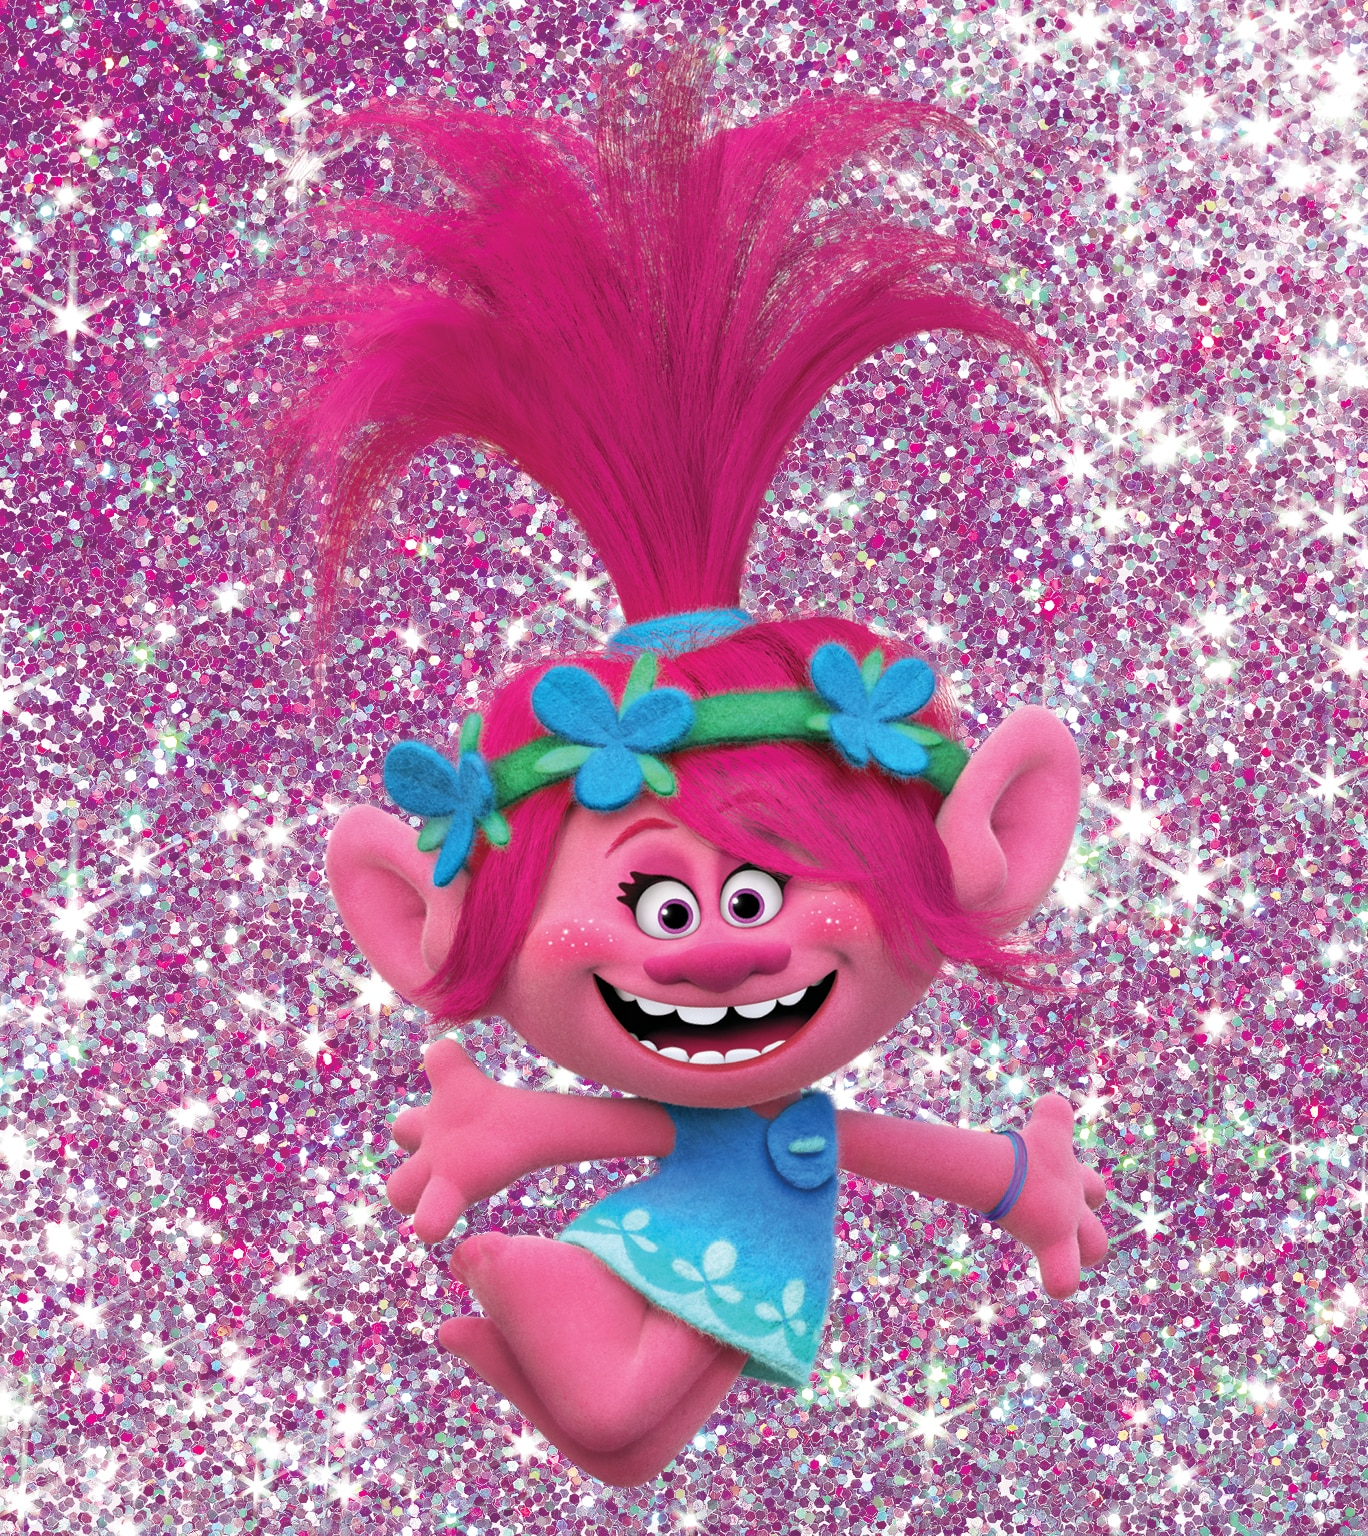 Poppy from Trolls LIVE